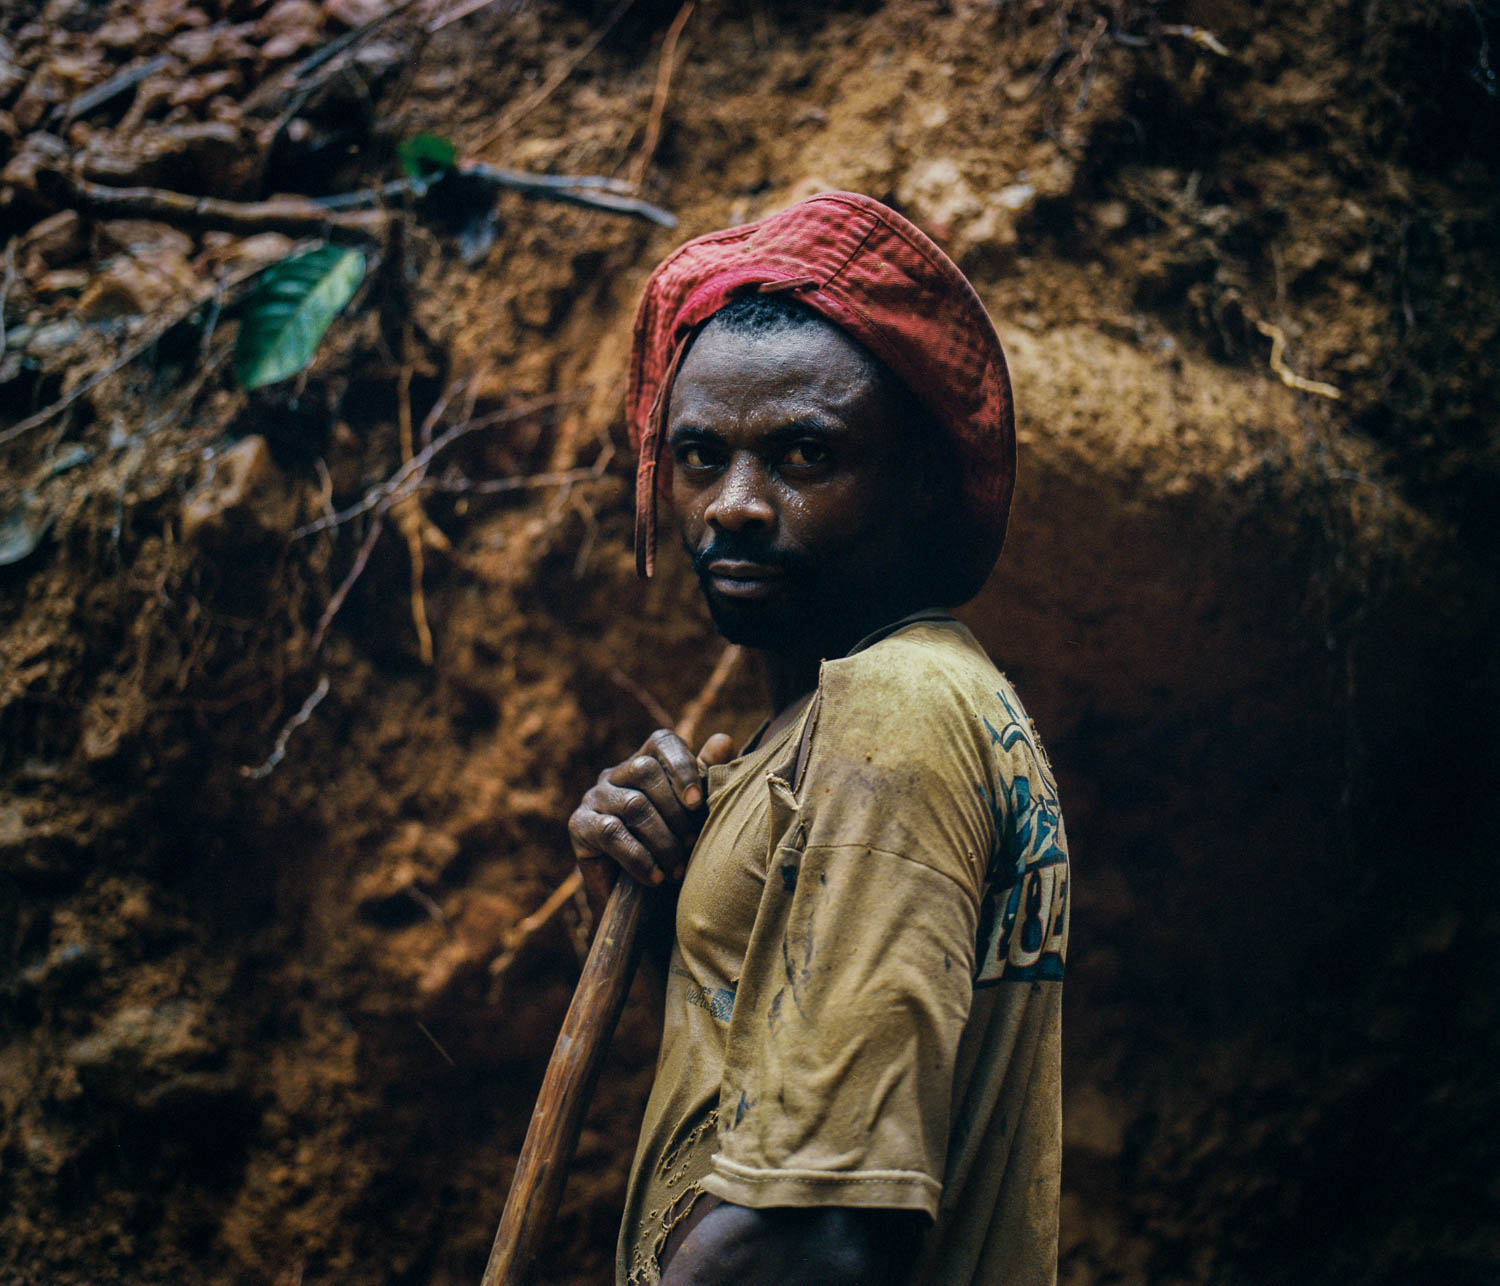 Migrants from the Bashi tribe of Bukavu region provide labor for the mines in territory controlled by the Raia Mutomboki. The Rega tribe, which make up the RM, are able to play supervisory roles due to their unique technical knowledge on the mining industry gained from laboring under the Belgian colonial enterprises of the past.Dec., 2013. South Kivu, Democratic Republic of the Congo.